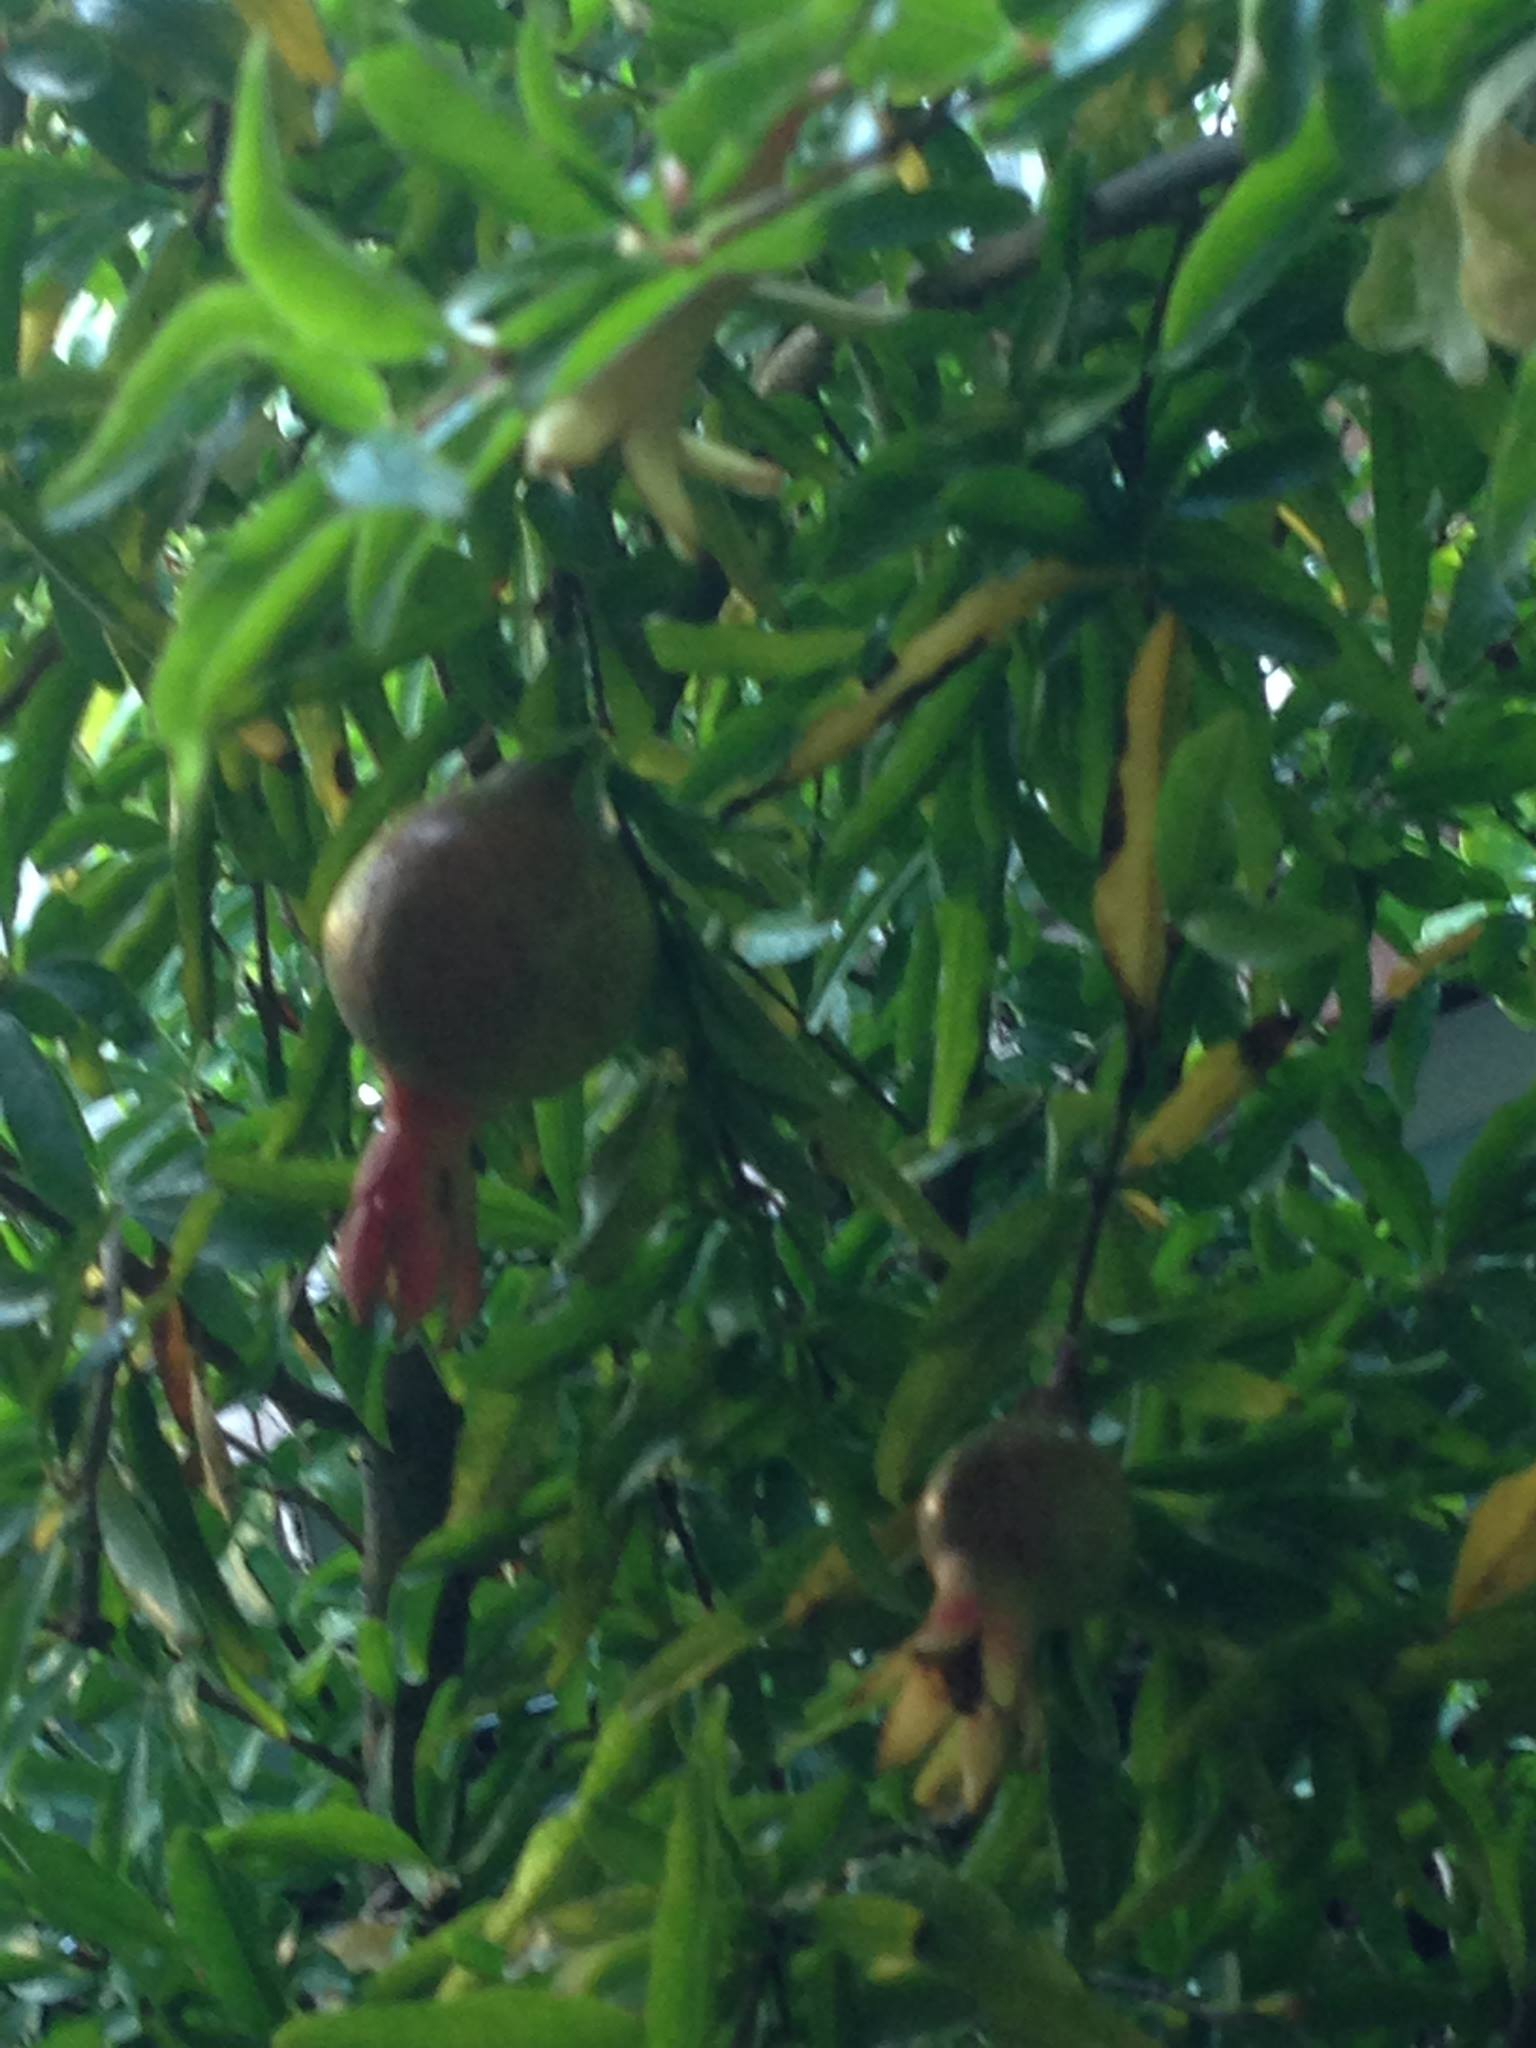 dwarf fruit tree, dwarf pomegranate tree,